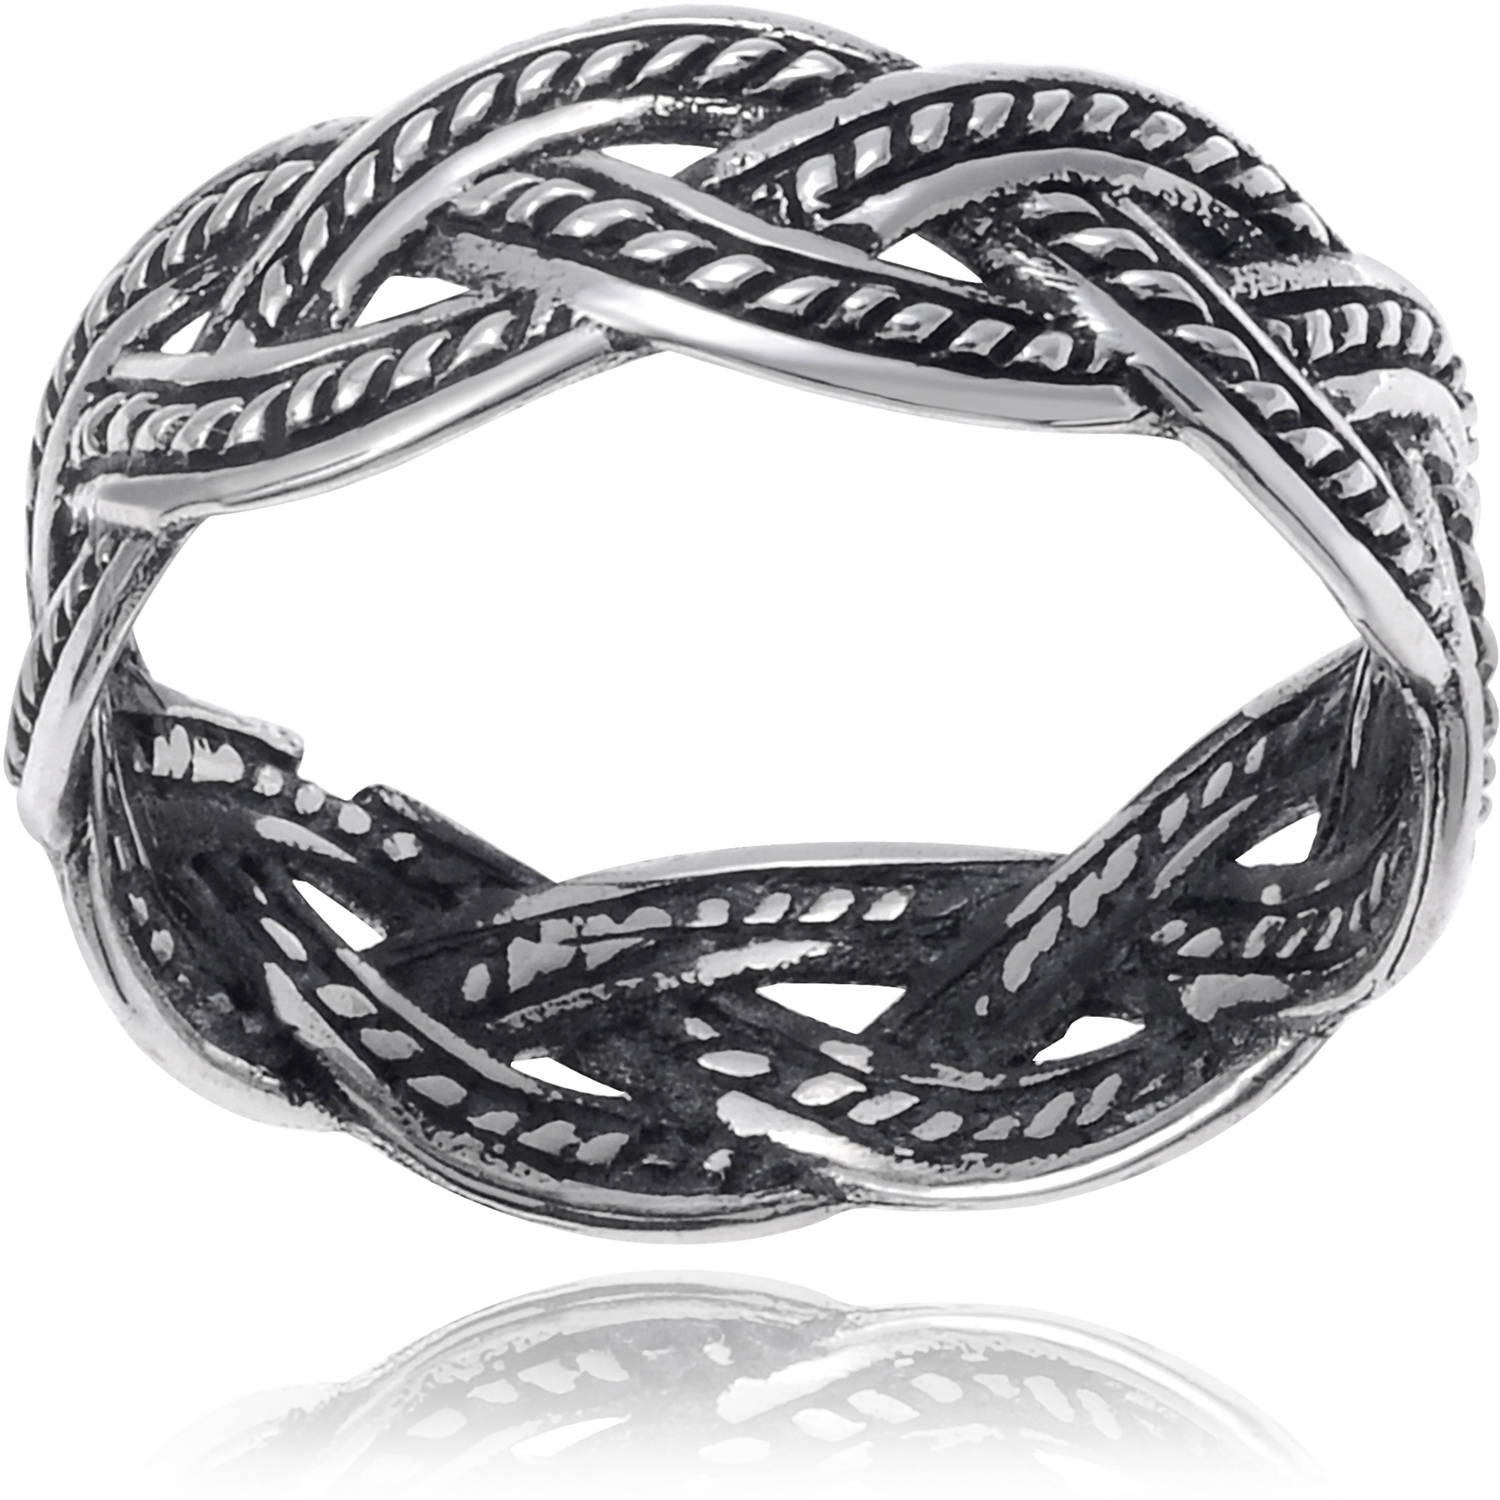 Brinley Co. Women's Sterling Silver Braided Band Fashion Ring